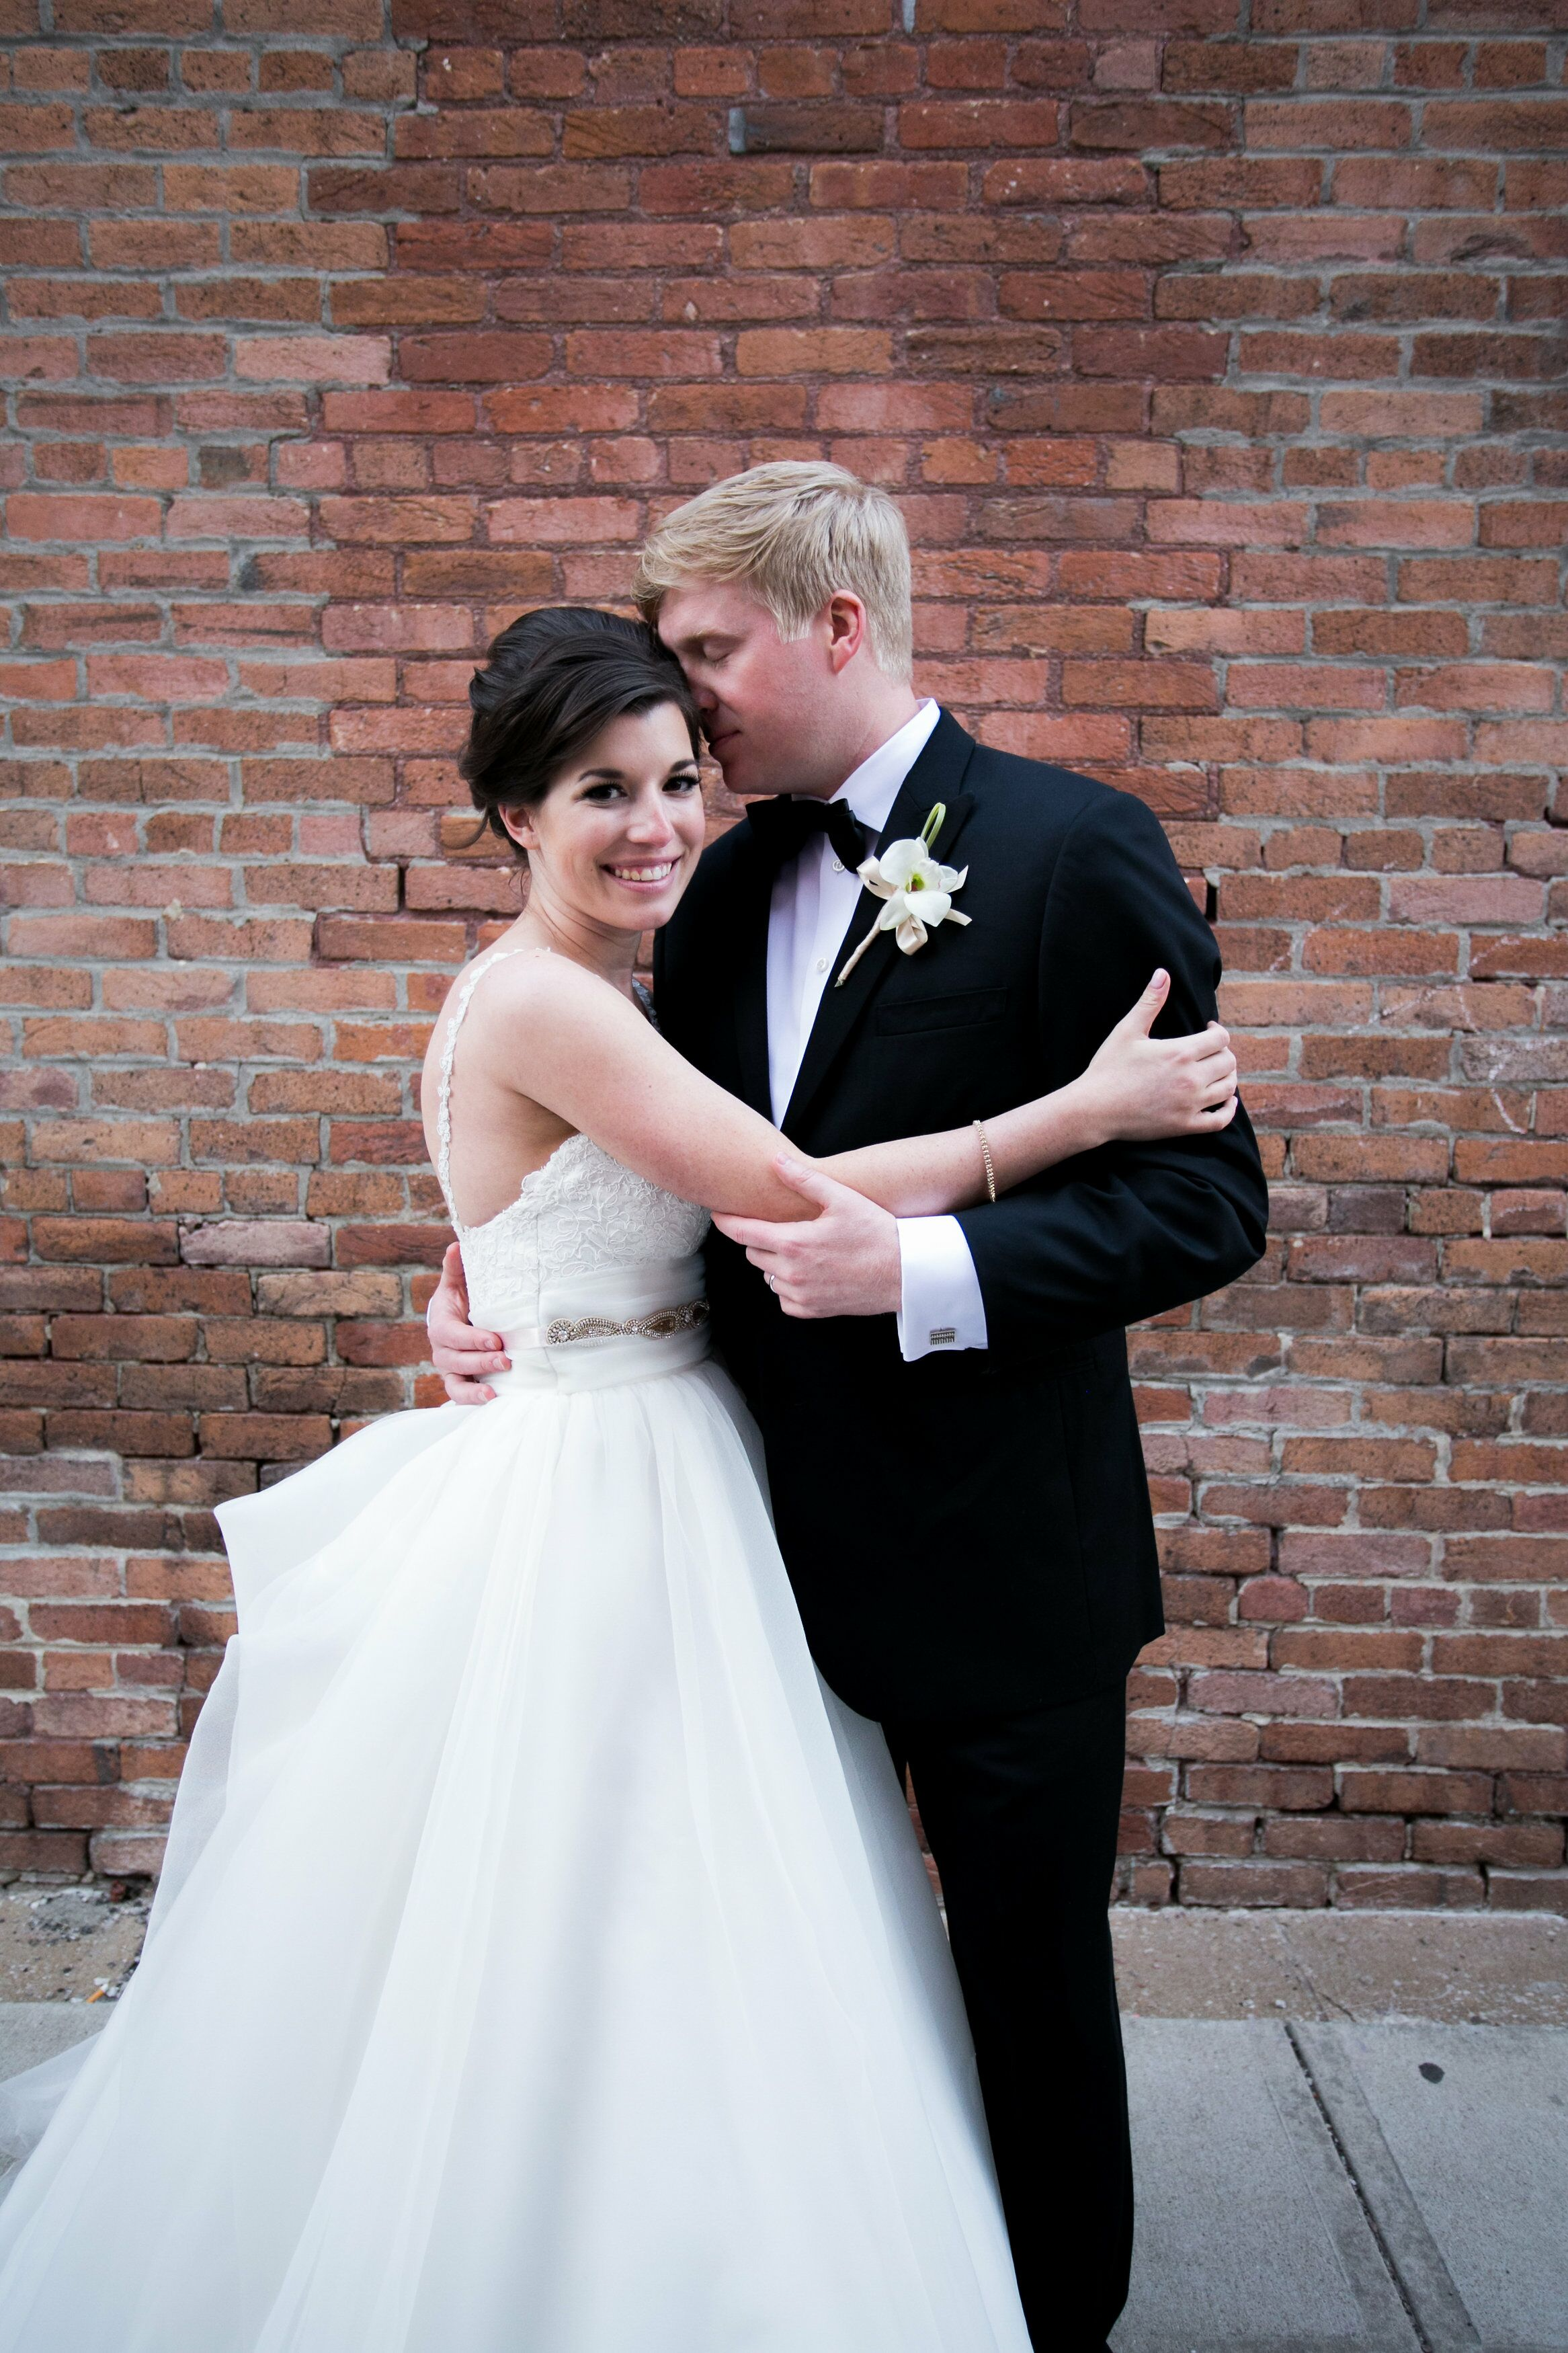 A casually elegant glamorous wedding at veridian event center in a casually elegant glamorous wedding at veridian event center in springfield missouri ombrellifo Image collections